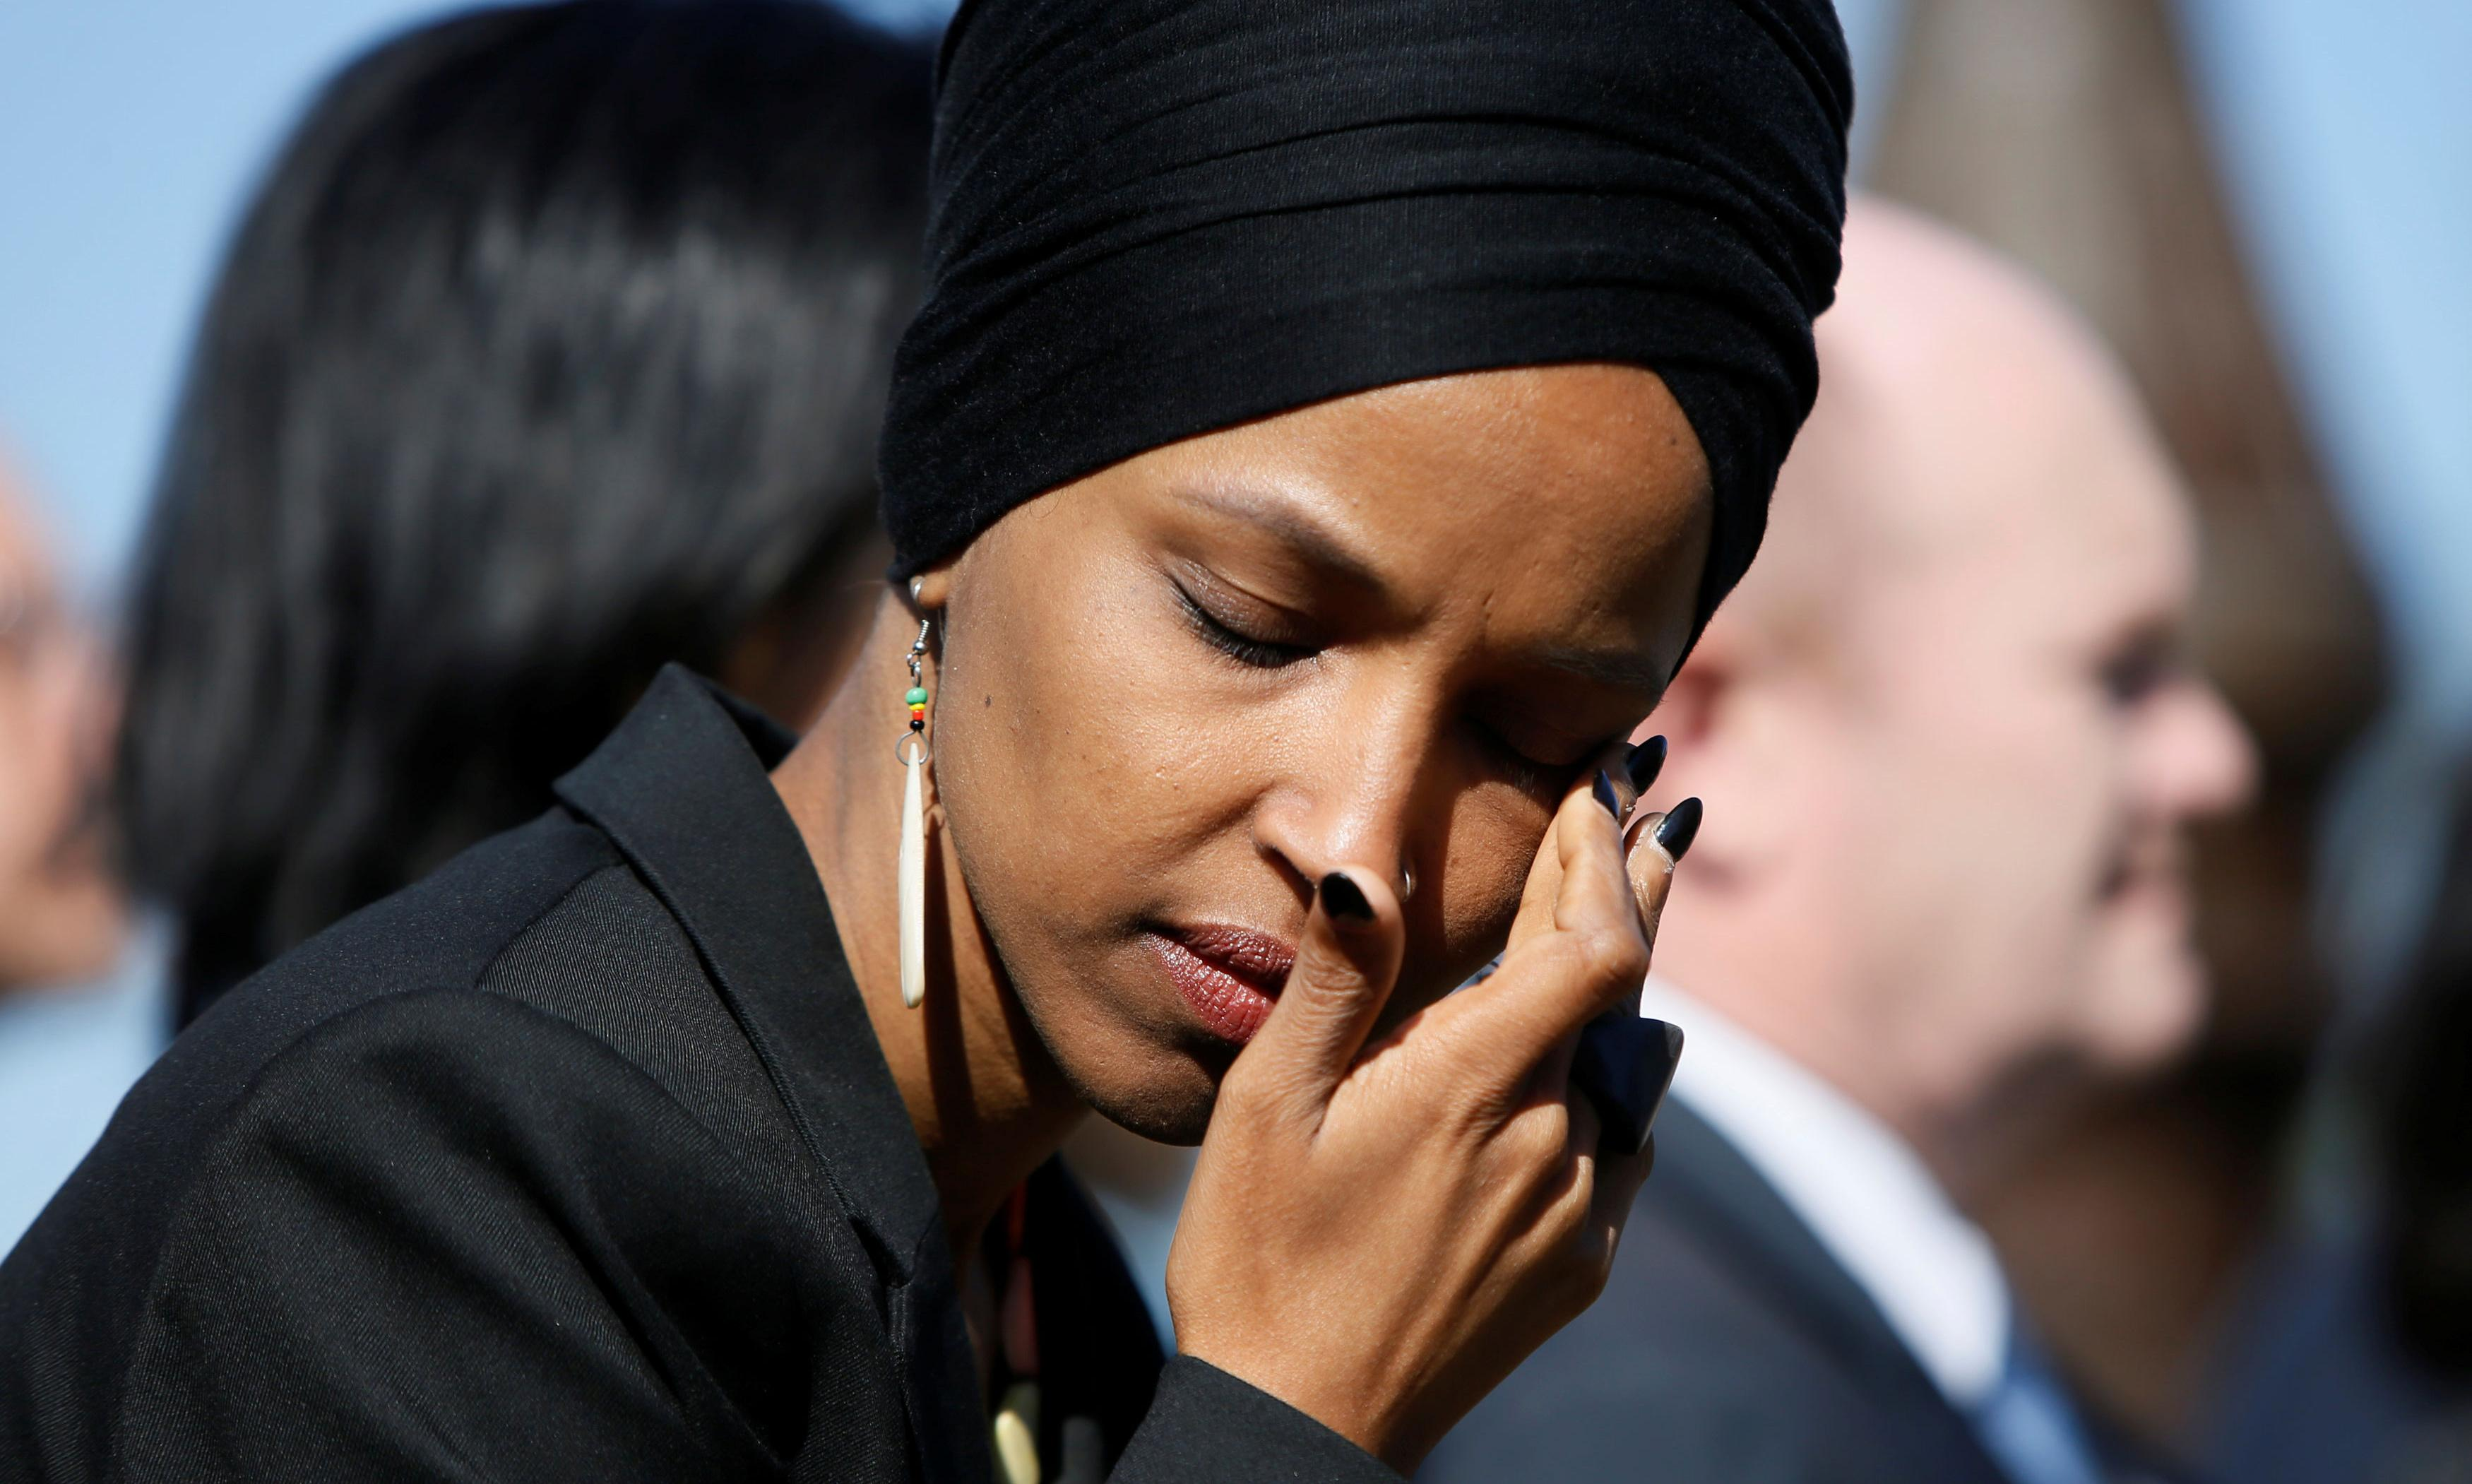 To those who lost loved ones on 9/11, Ilhan Omar is simply not worth such outrage